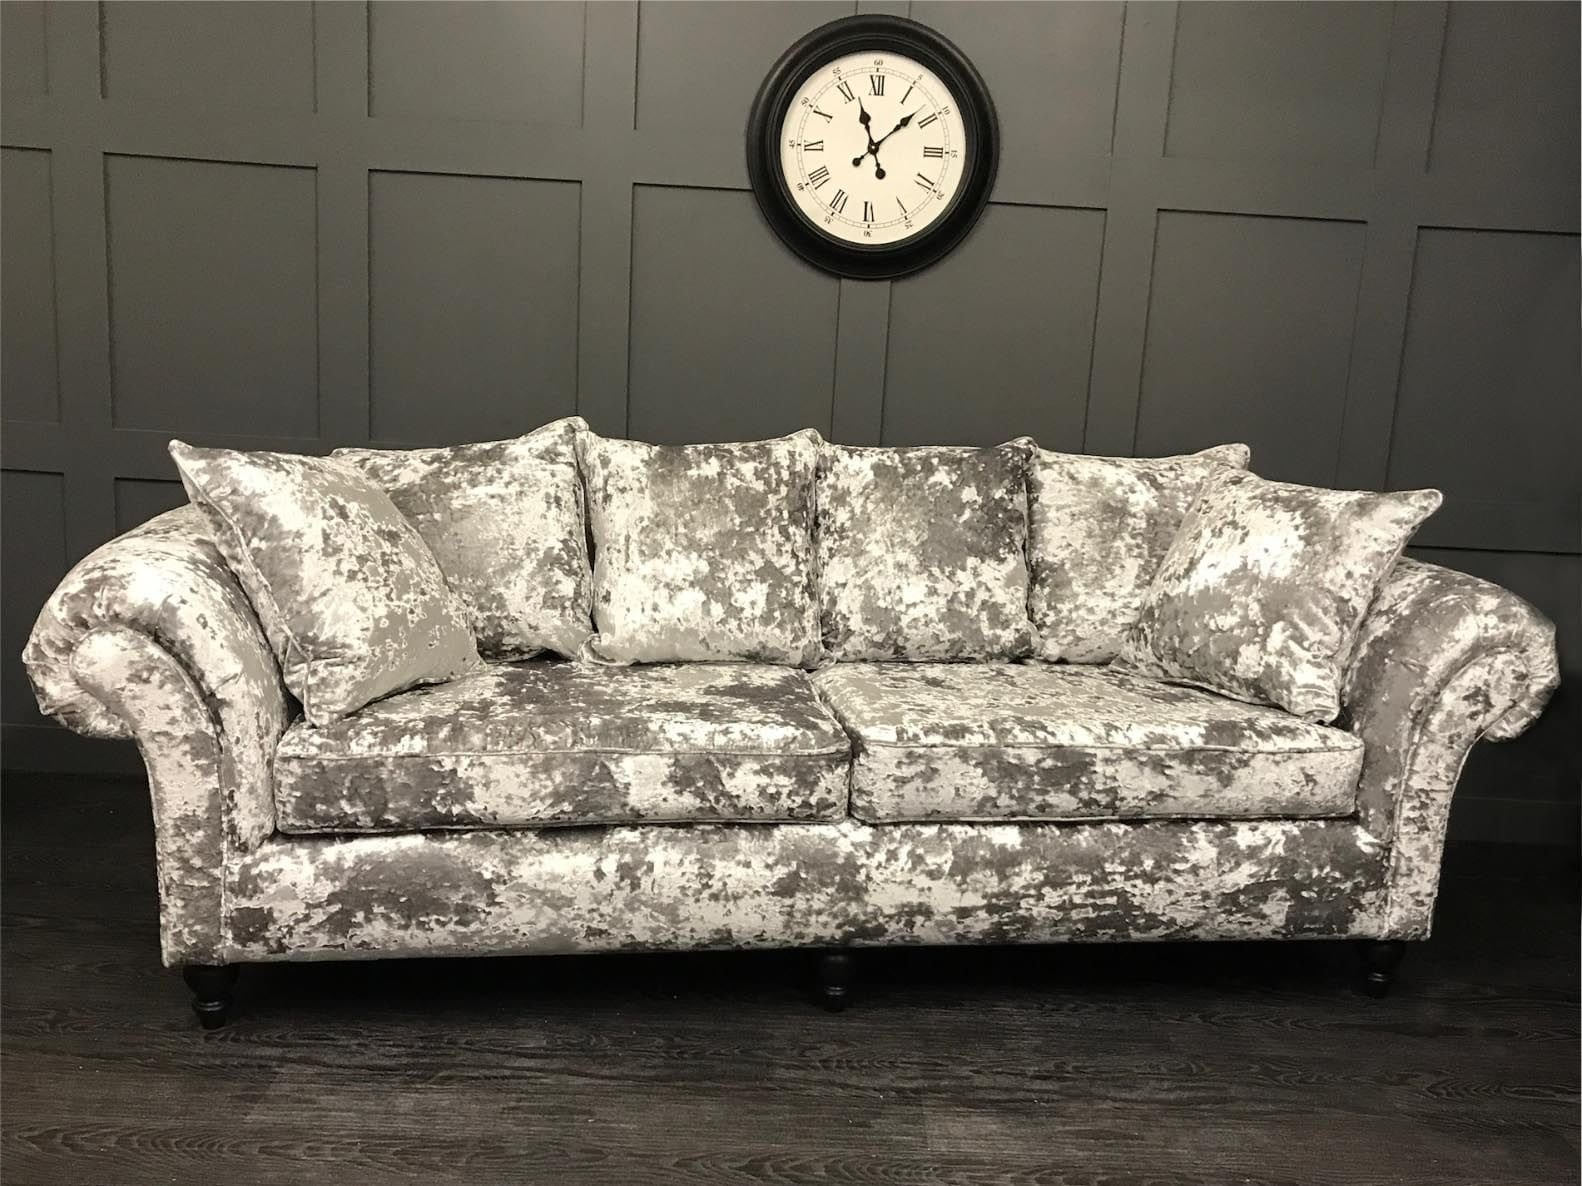 The Balmoral Sofa 4 Seater